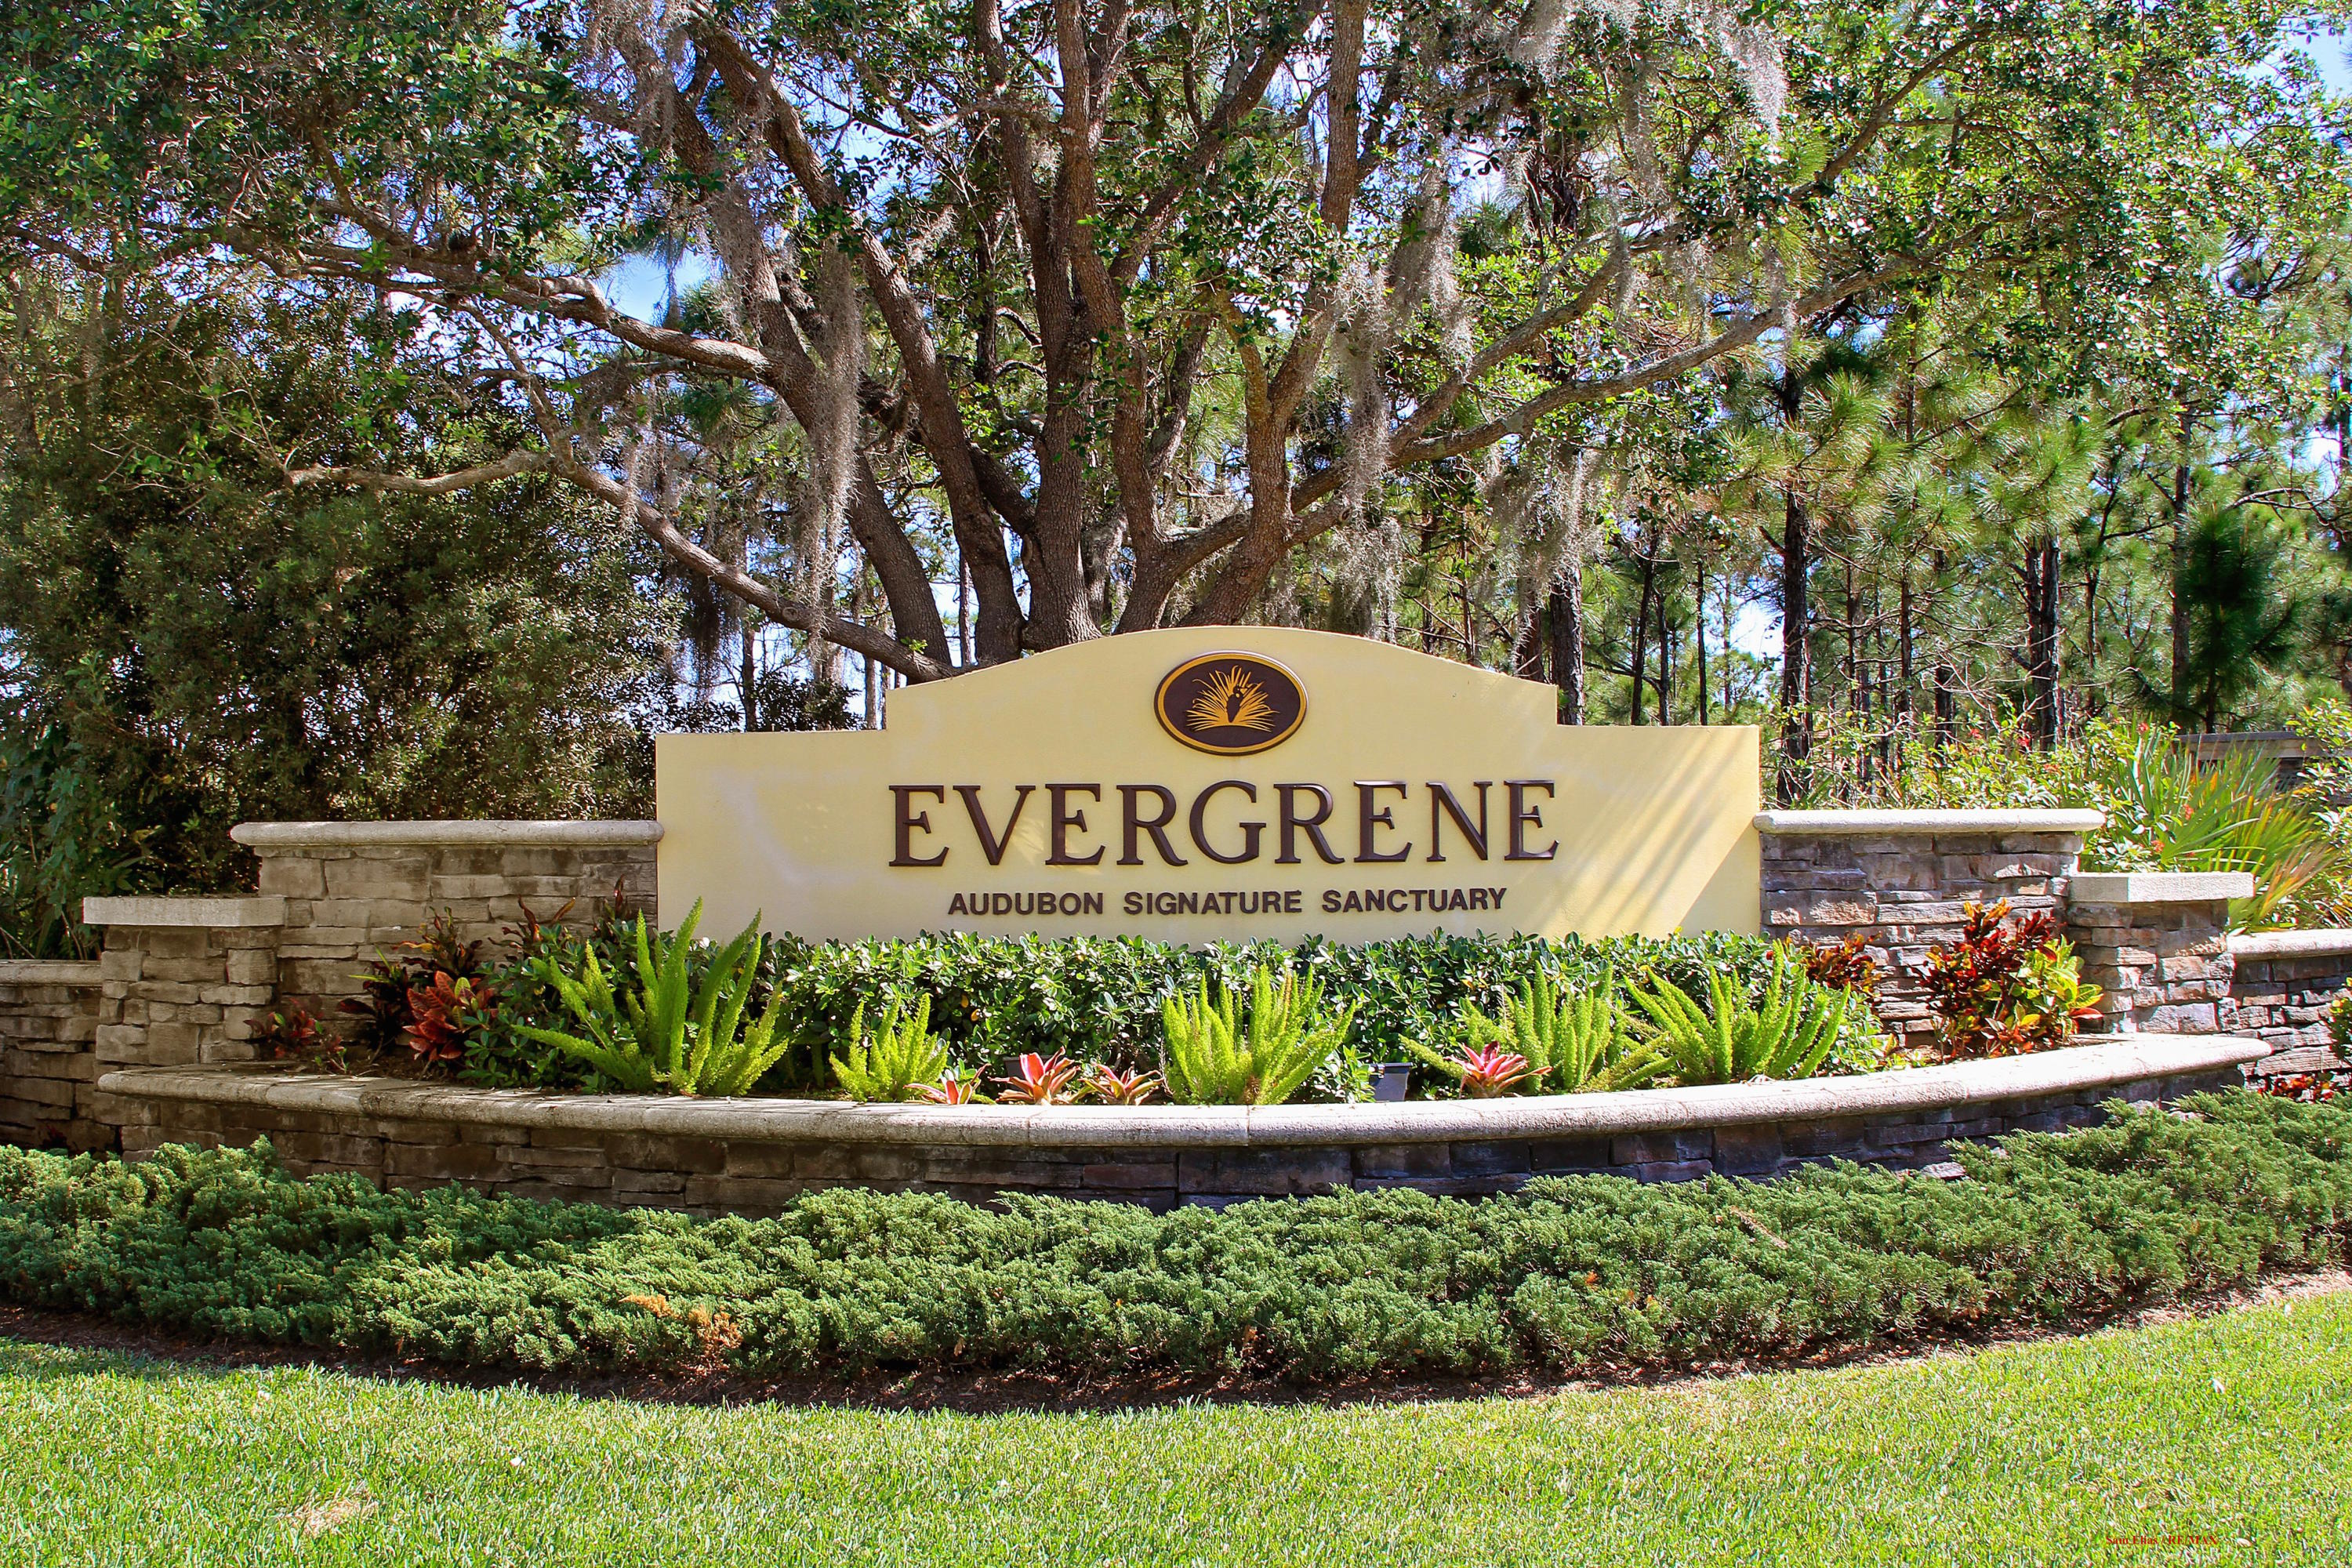 EVERGRENE PALM BEACH GARDENS